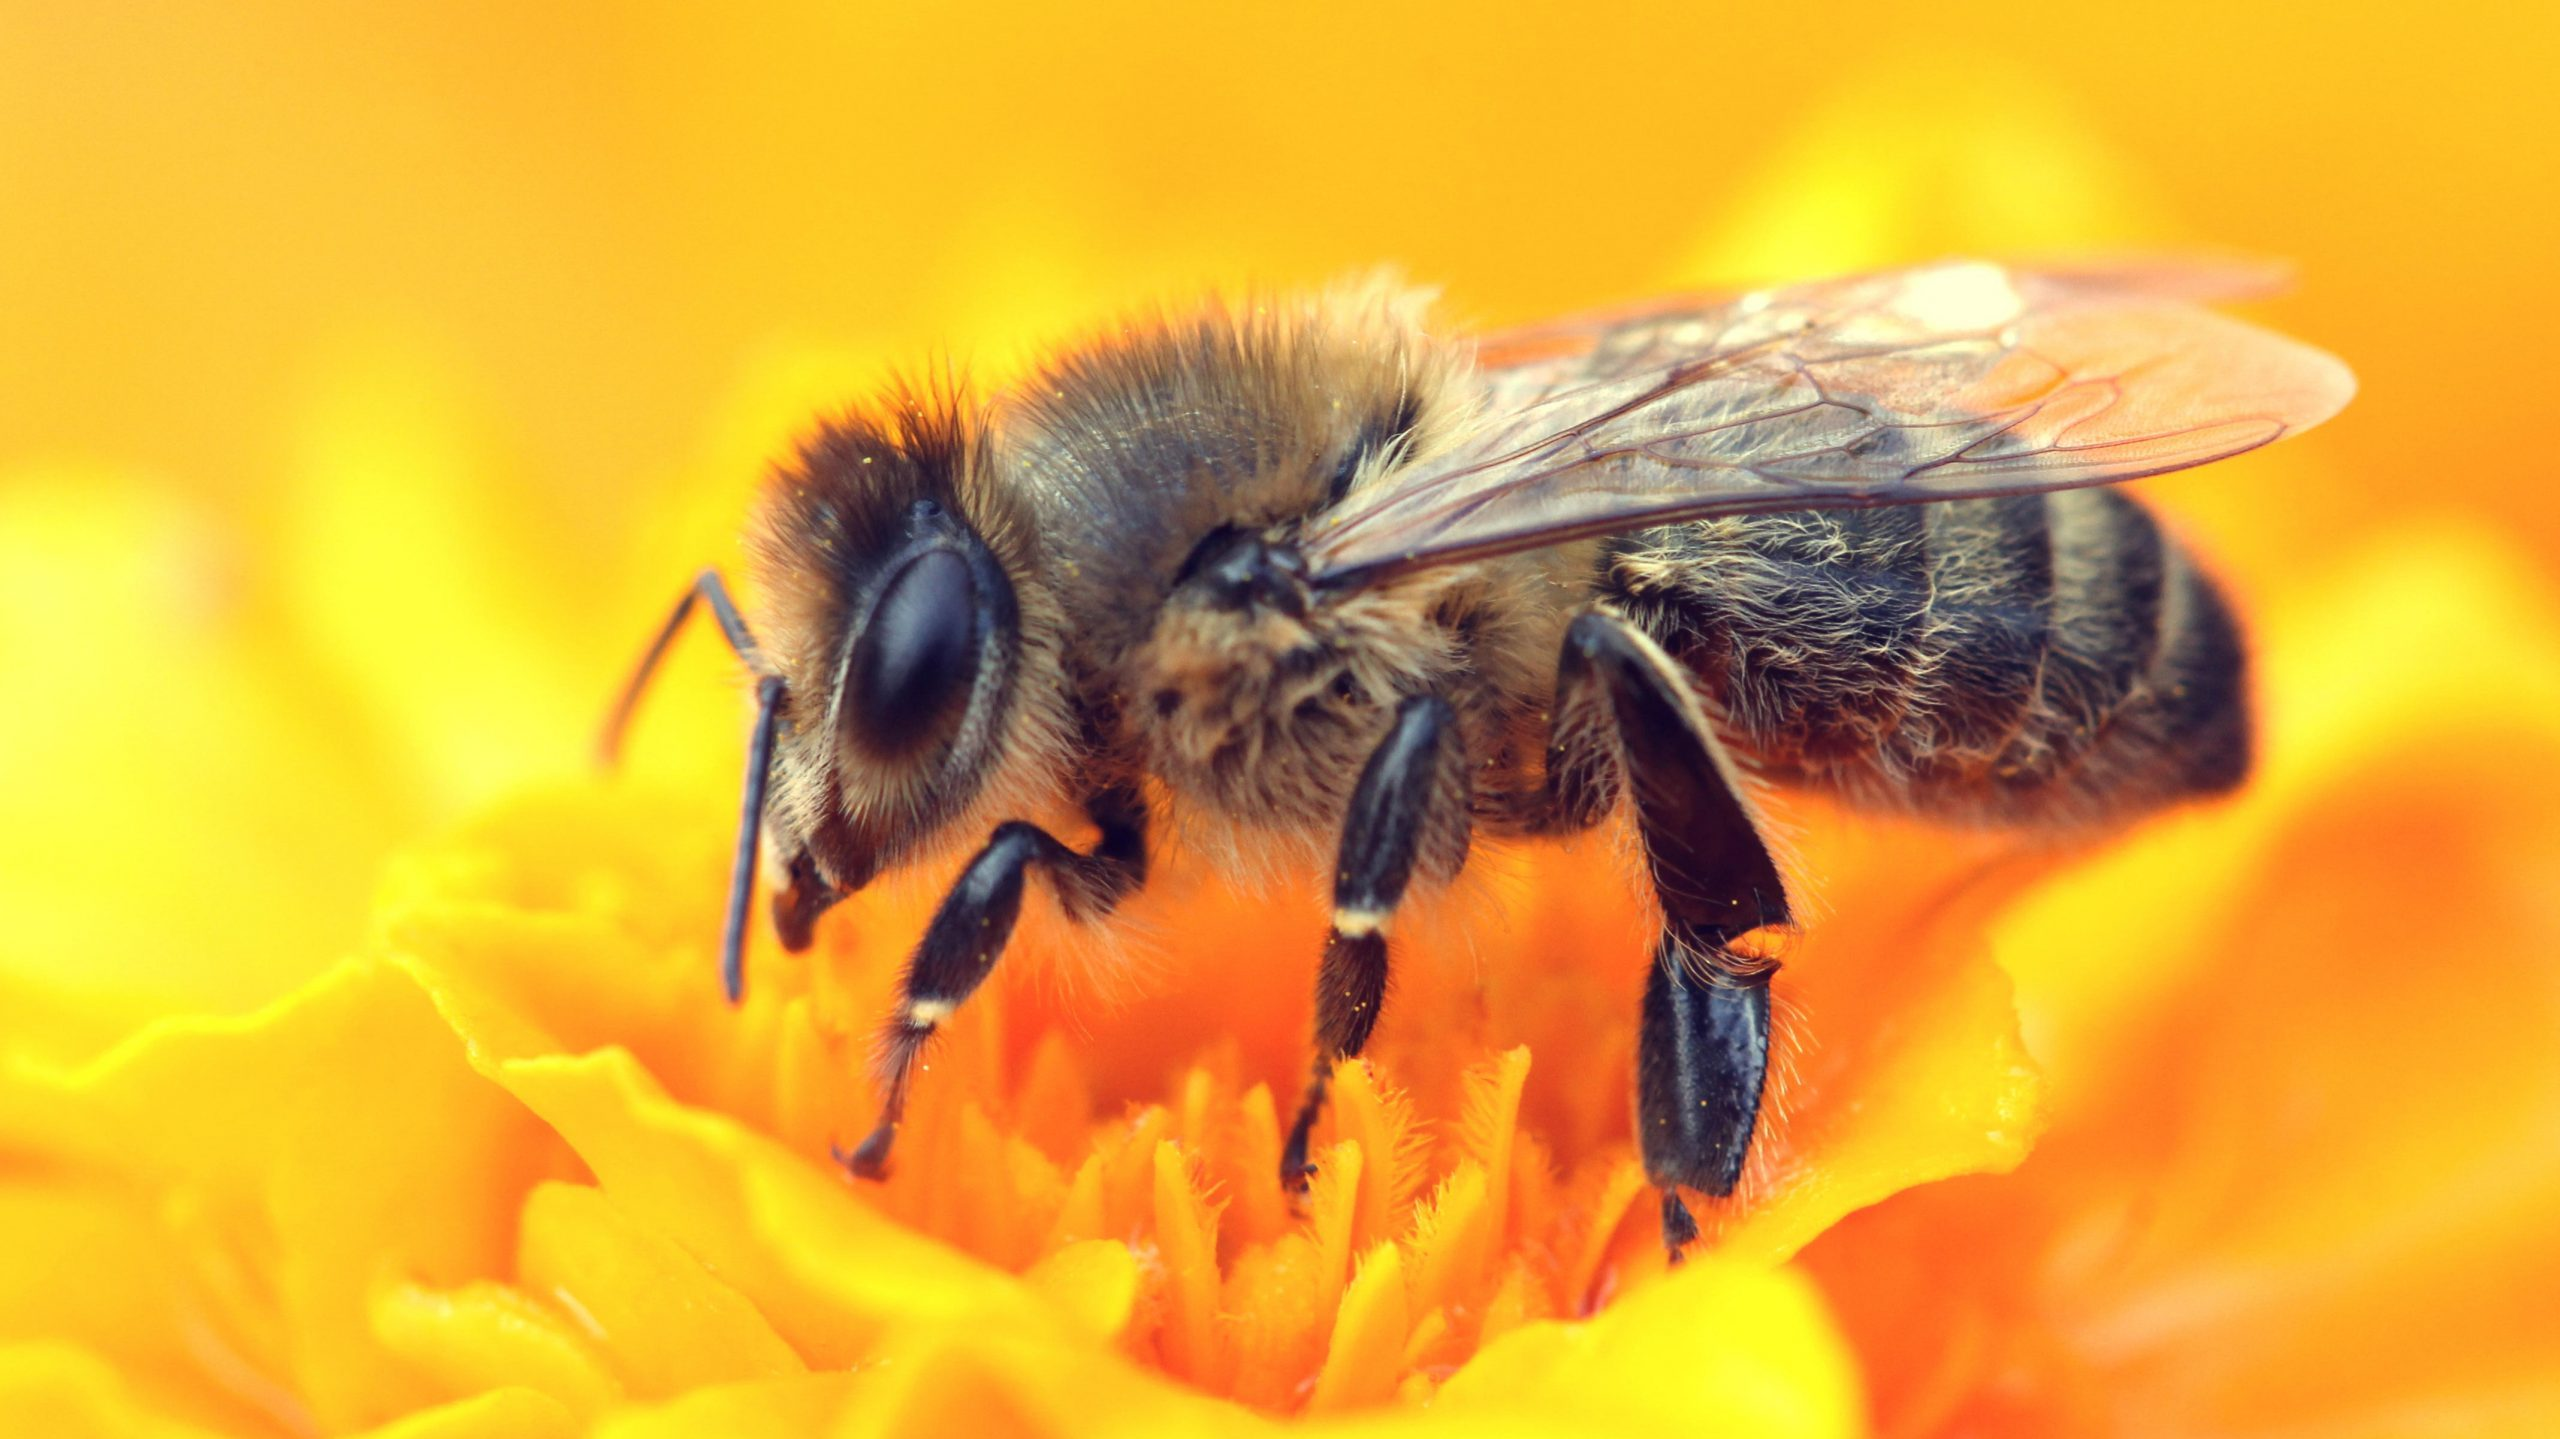 How We Can Help Honeybees Every Day | Reader's Digest